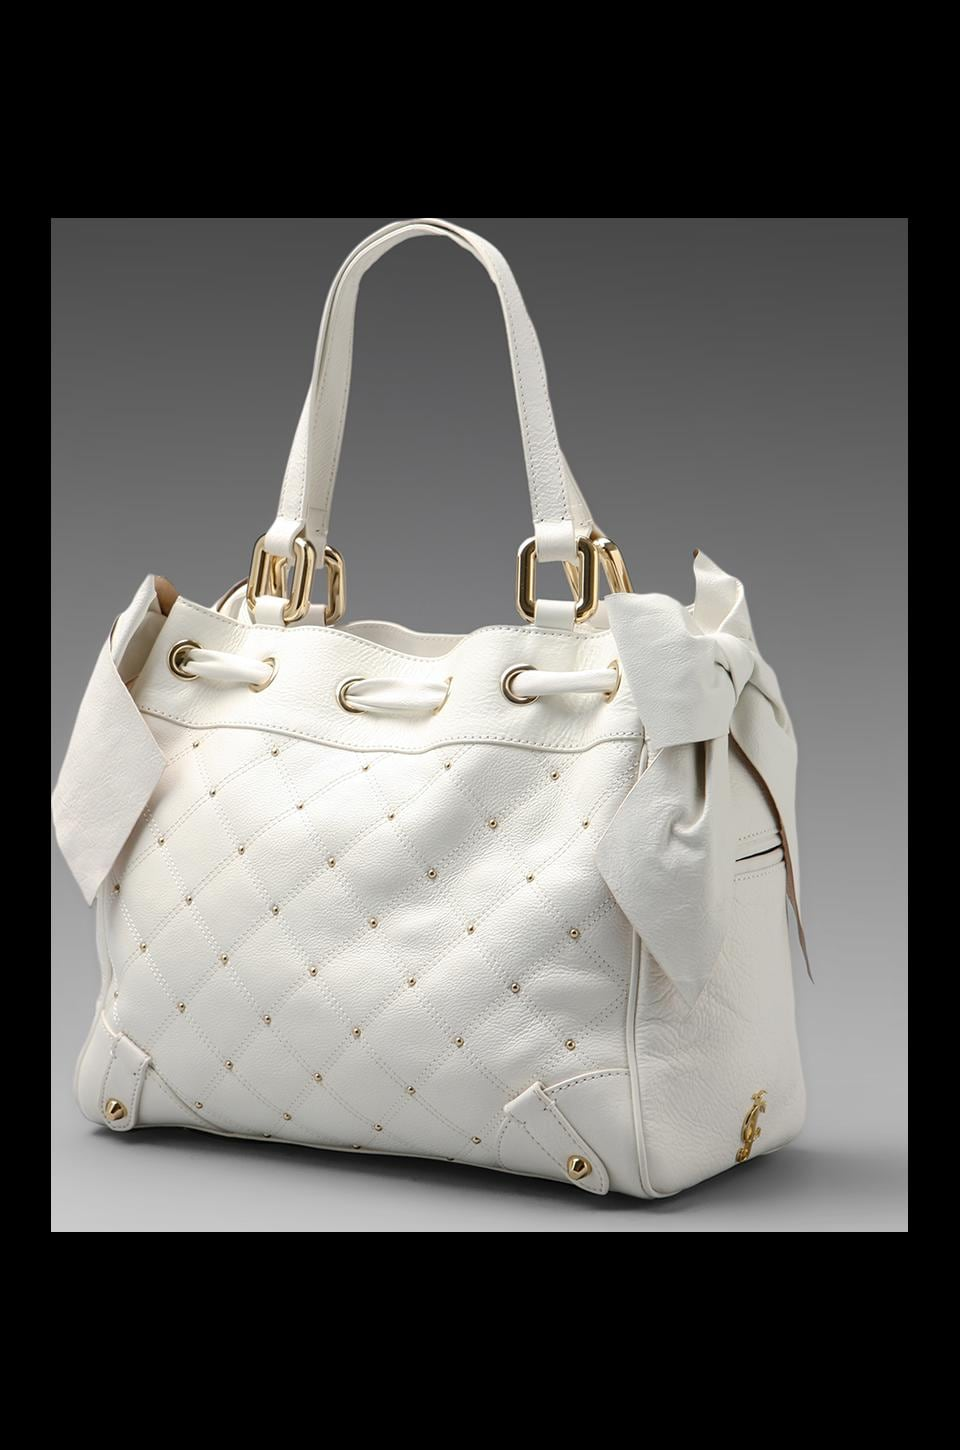 Juicy Couture Frankie Leather Daydreamer in White